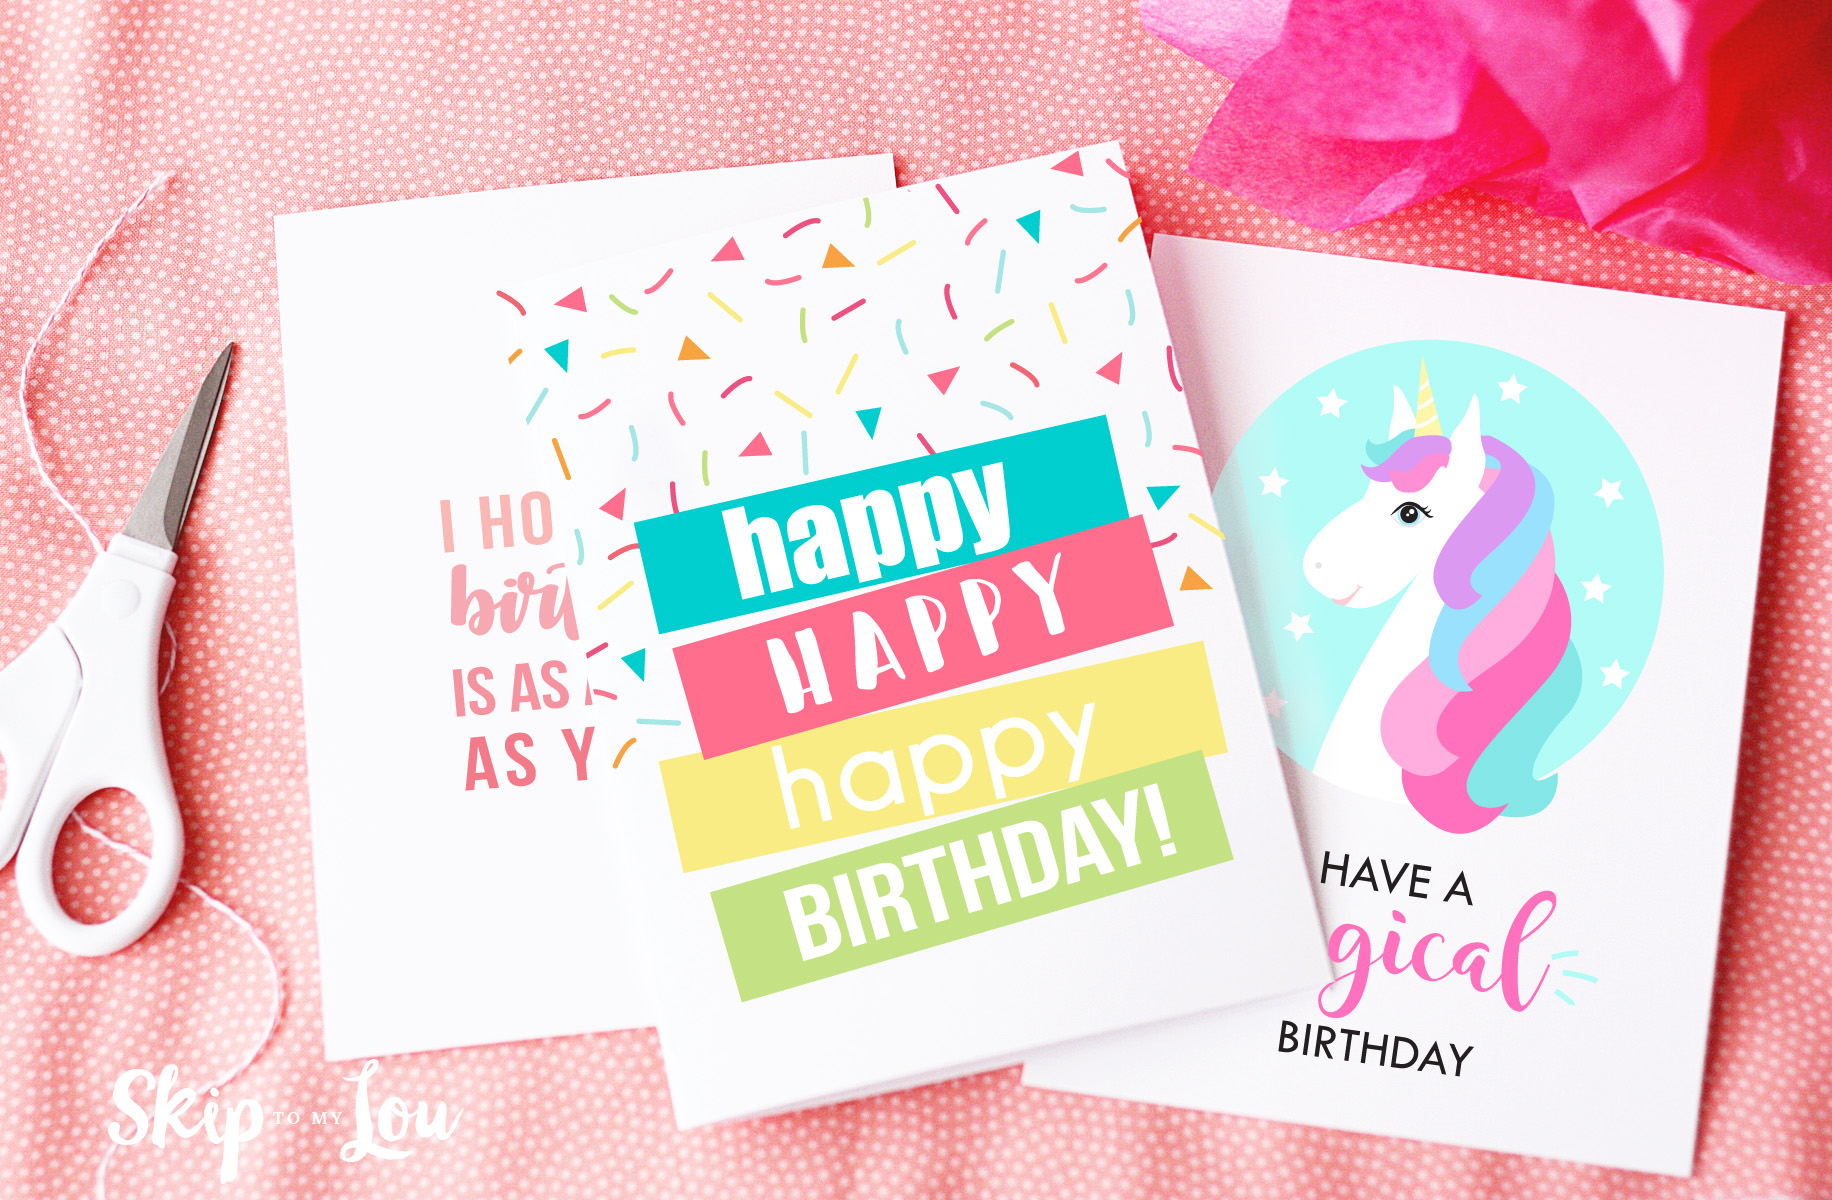 Free Printable Birthday Cards | Skip To My Lou - Free Printable Birthday Cards For Her